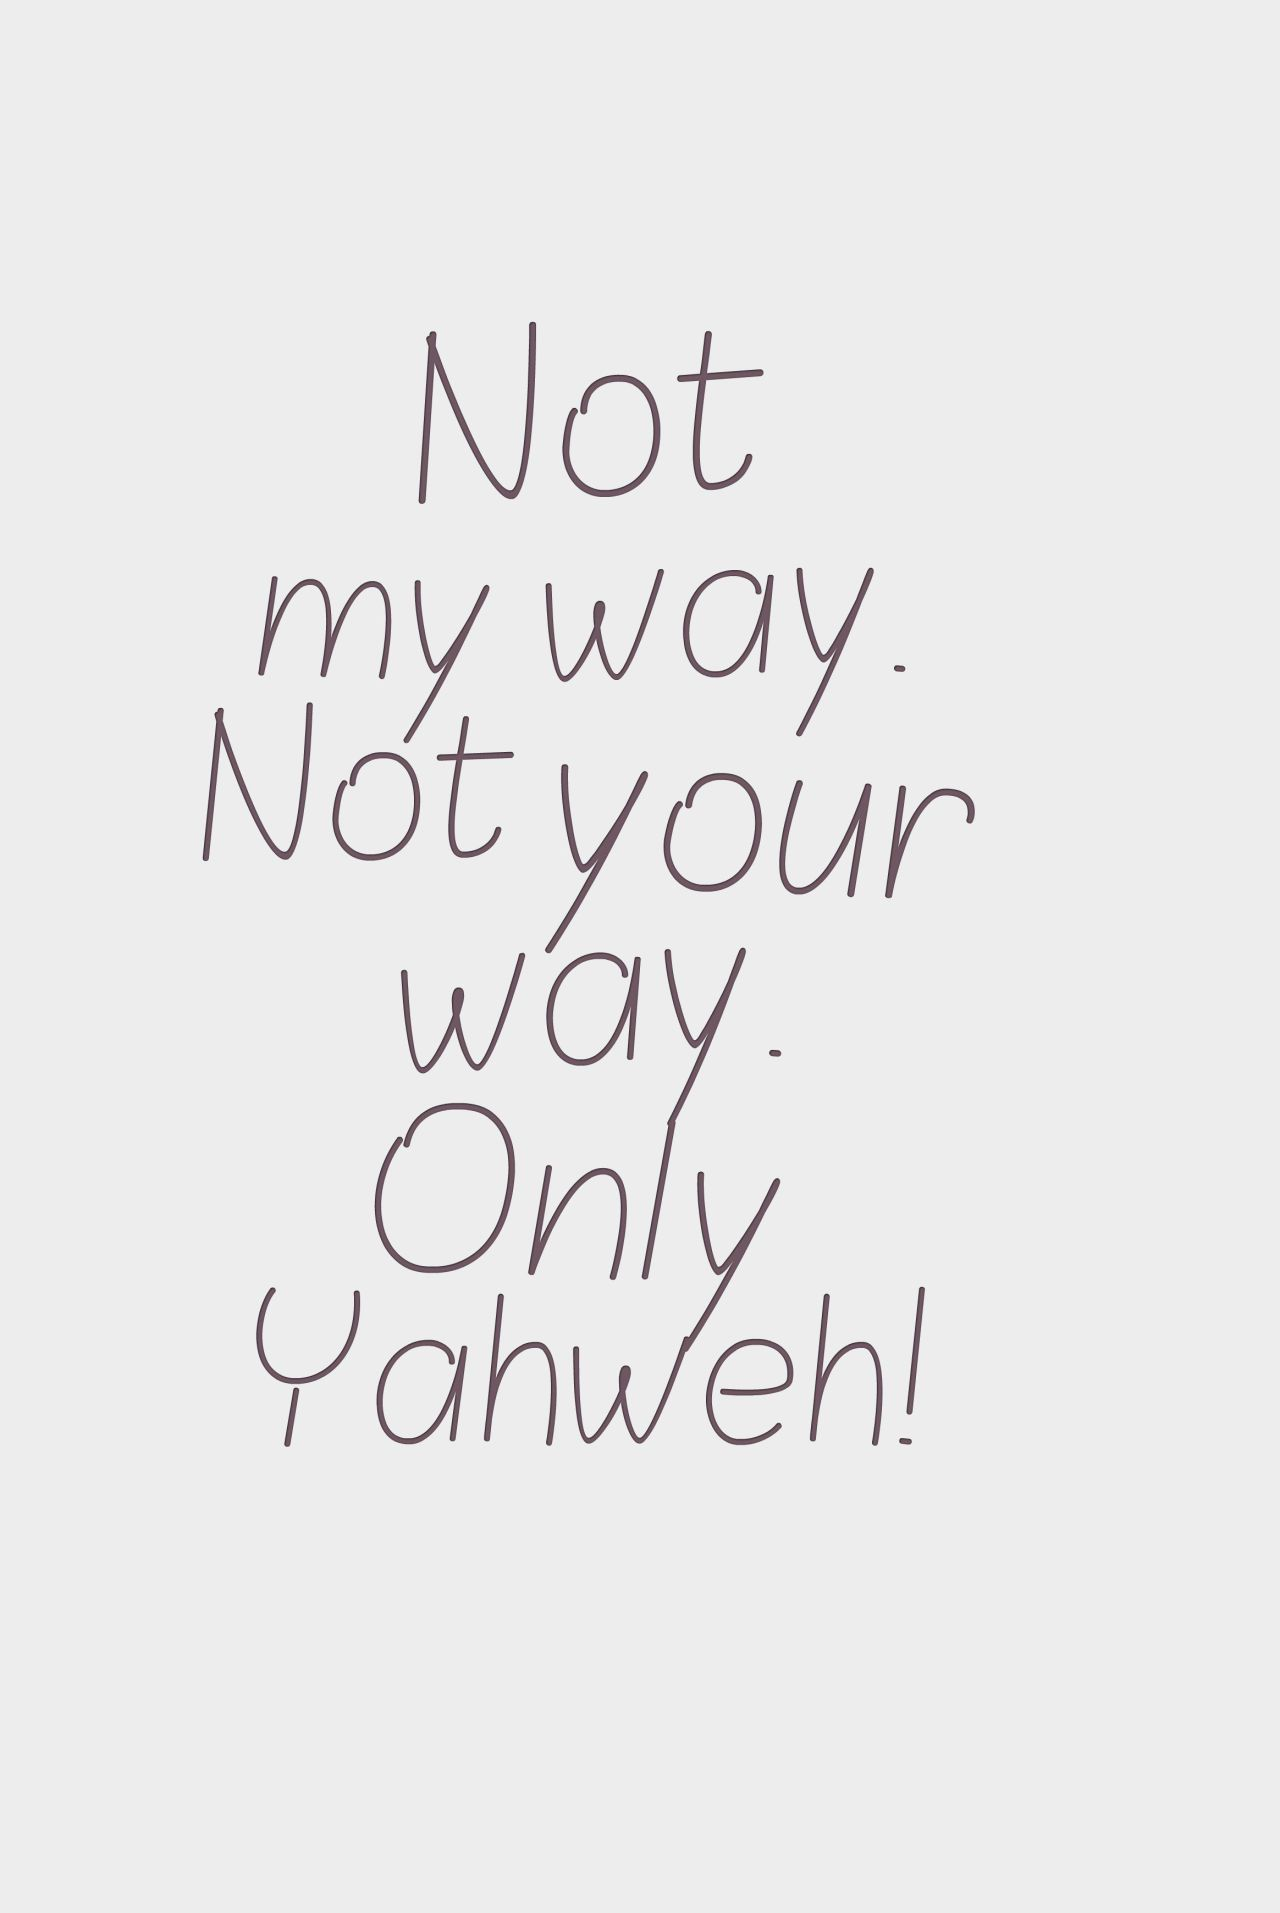 Not my way  Not your way  Only Yahweh! | Inspirational